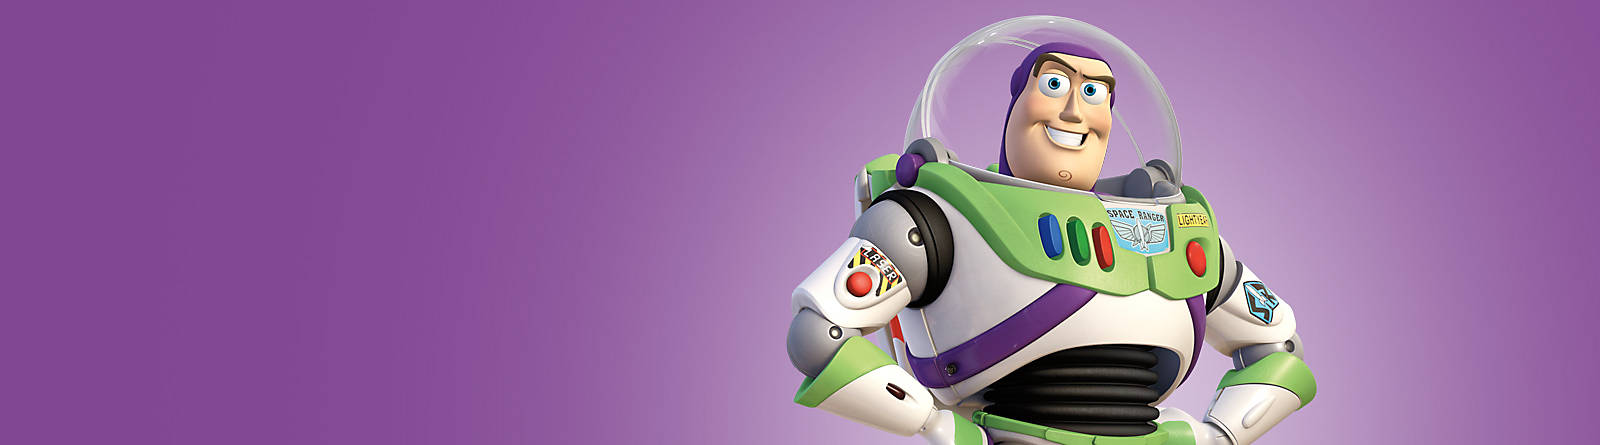 Buzz Lightyear To infinity and beyond! Discover our range of Buzz Lightyear merchandise including costumes, clothing, toys and more